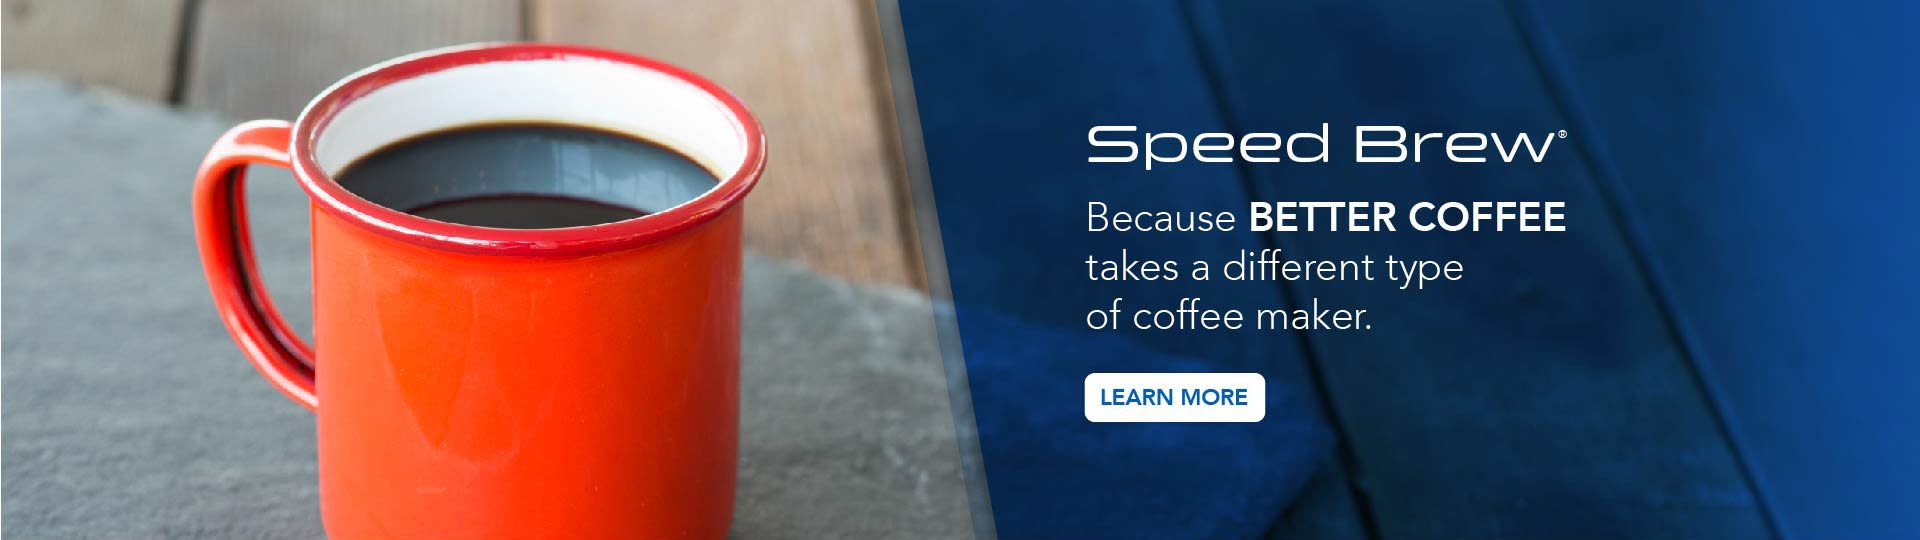 Because Better Coffee takes a different type of coffee maker - Speed Brew - Learn More